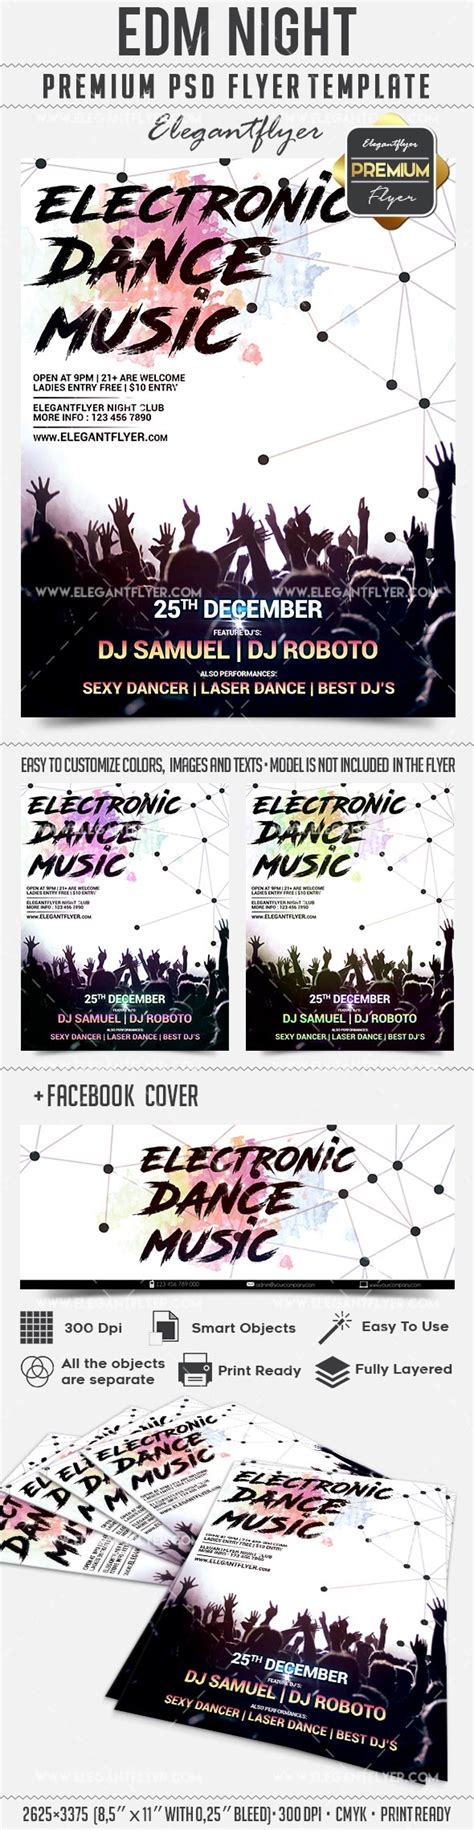 html edm template free edm cover template psd flyer